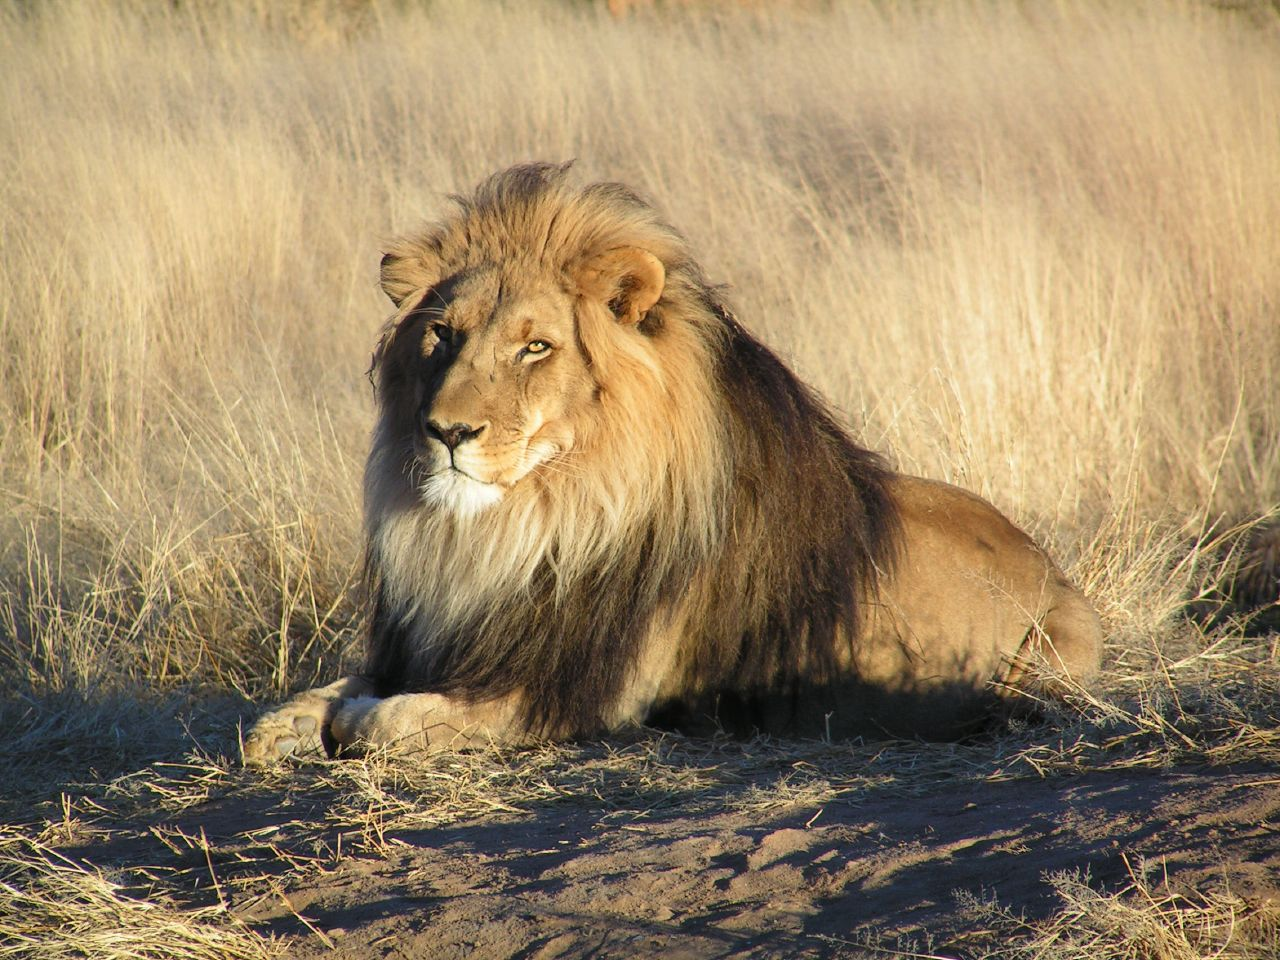 Lion. Photo credit: Kevin Pluck. https://commons.wikimedia.org/wiki/File:Lion_waiting_in_Namibia.jpg